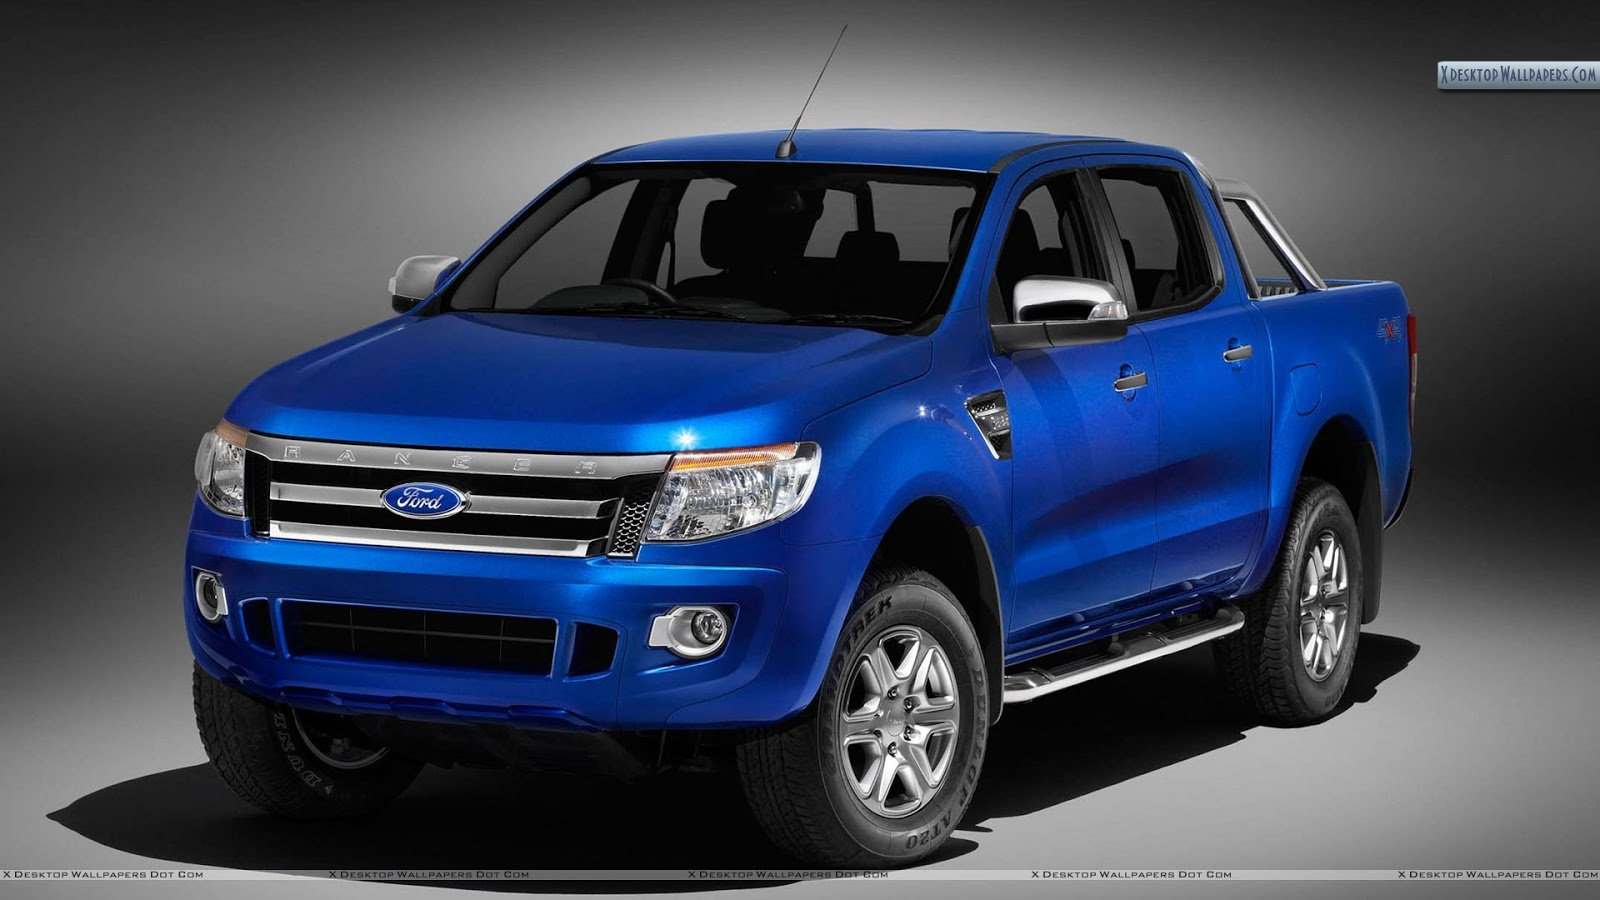 New Ford Cars Ford Ranger Wildtrak On This Month